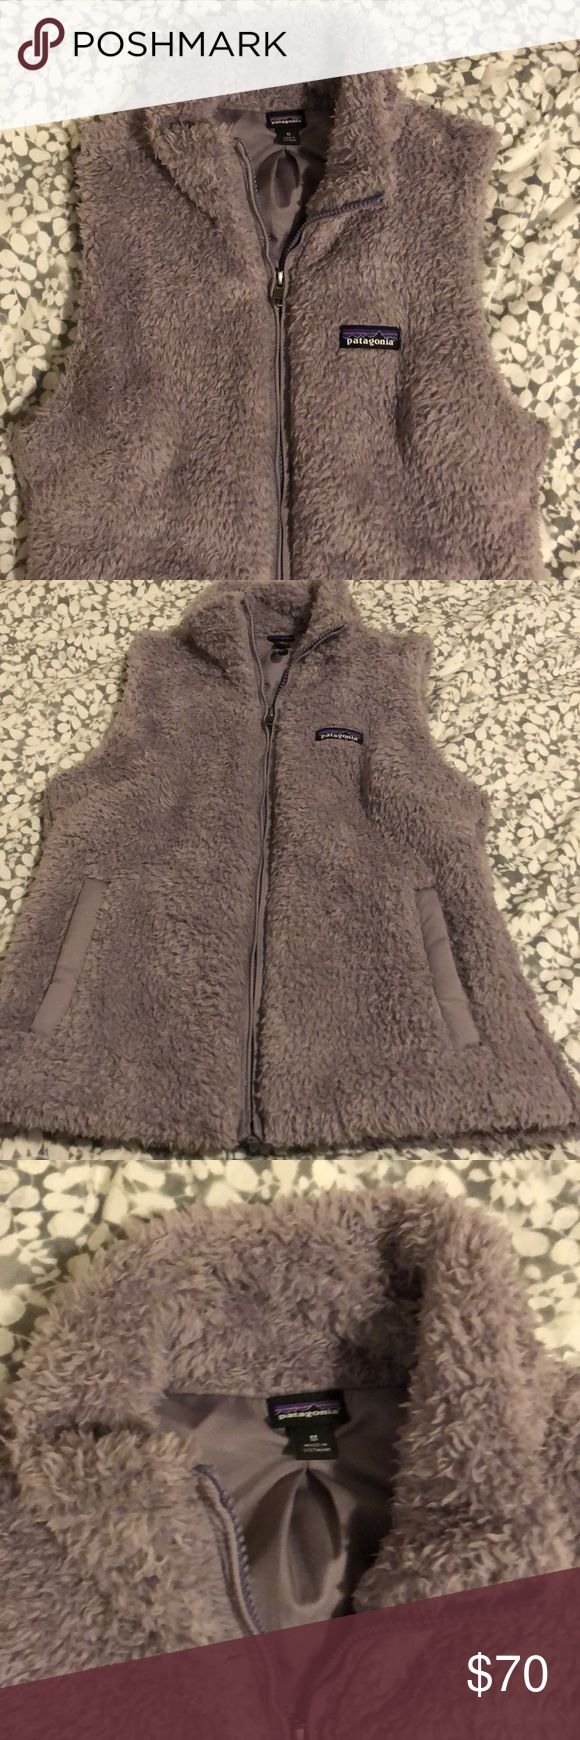 Patagonia Los Gatos Purple Fuzzy Vest Only worn once! This Patagonia Vest is a must have for winter! It does run a bit small. Super cozy and soft Patagonia Jackets & Coats Vests